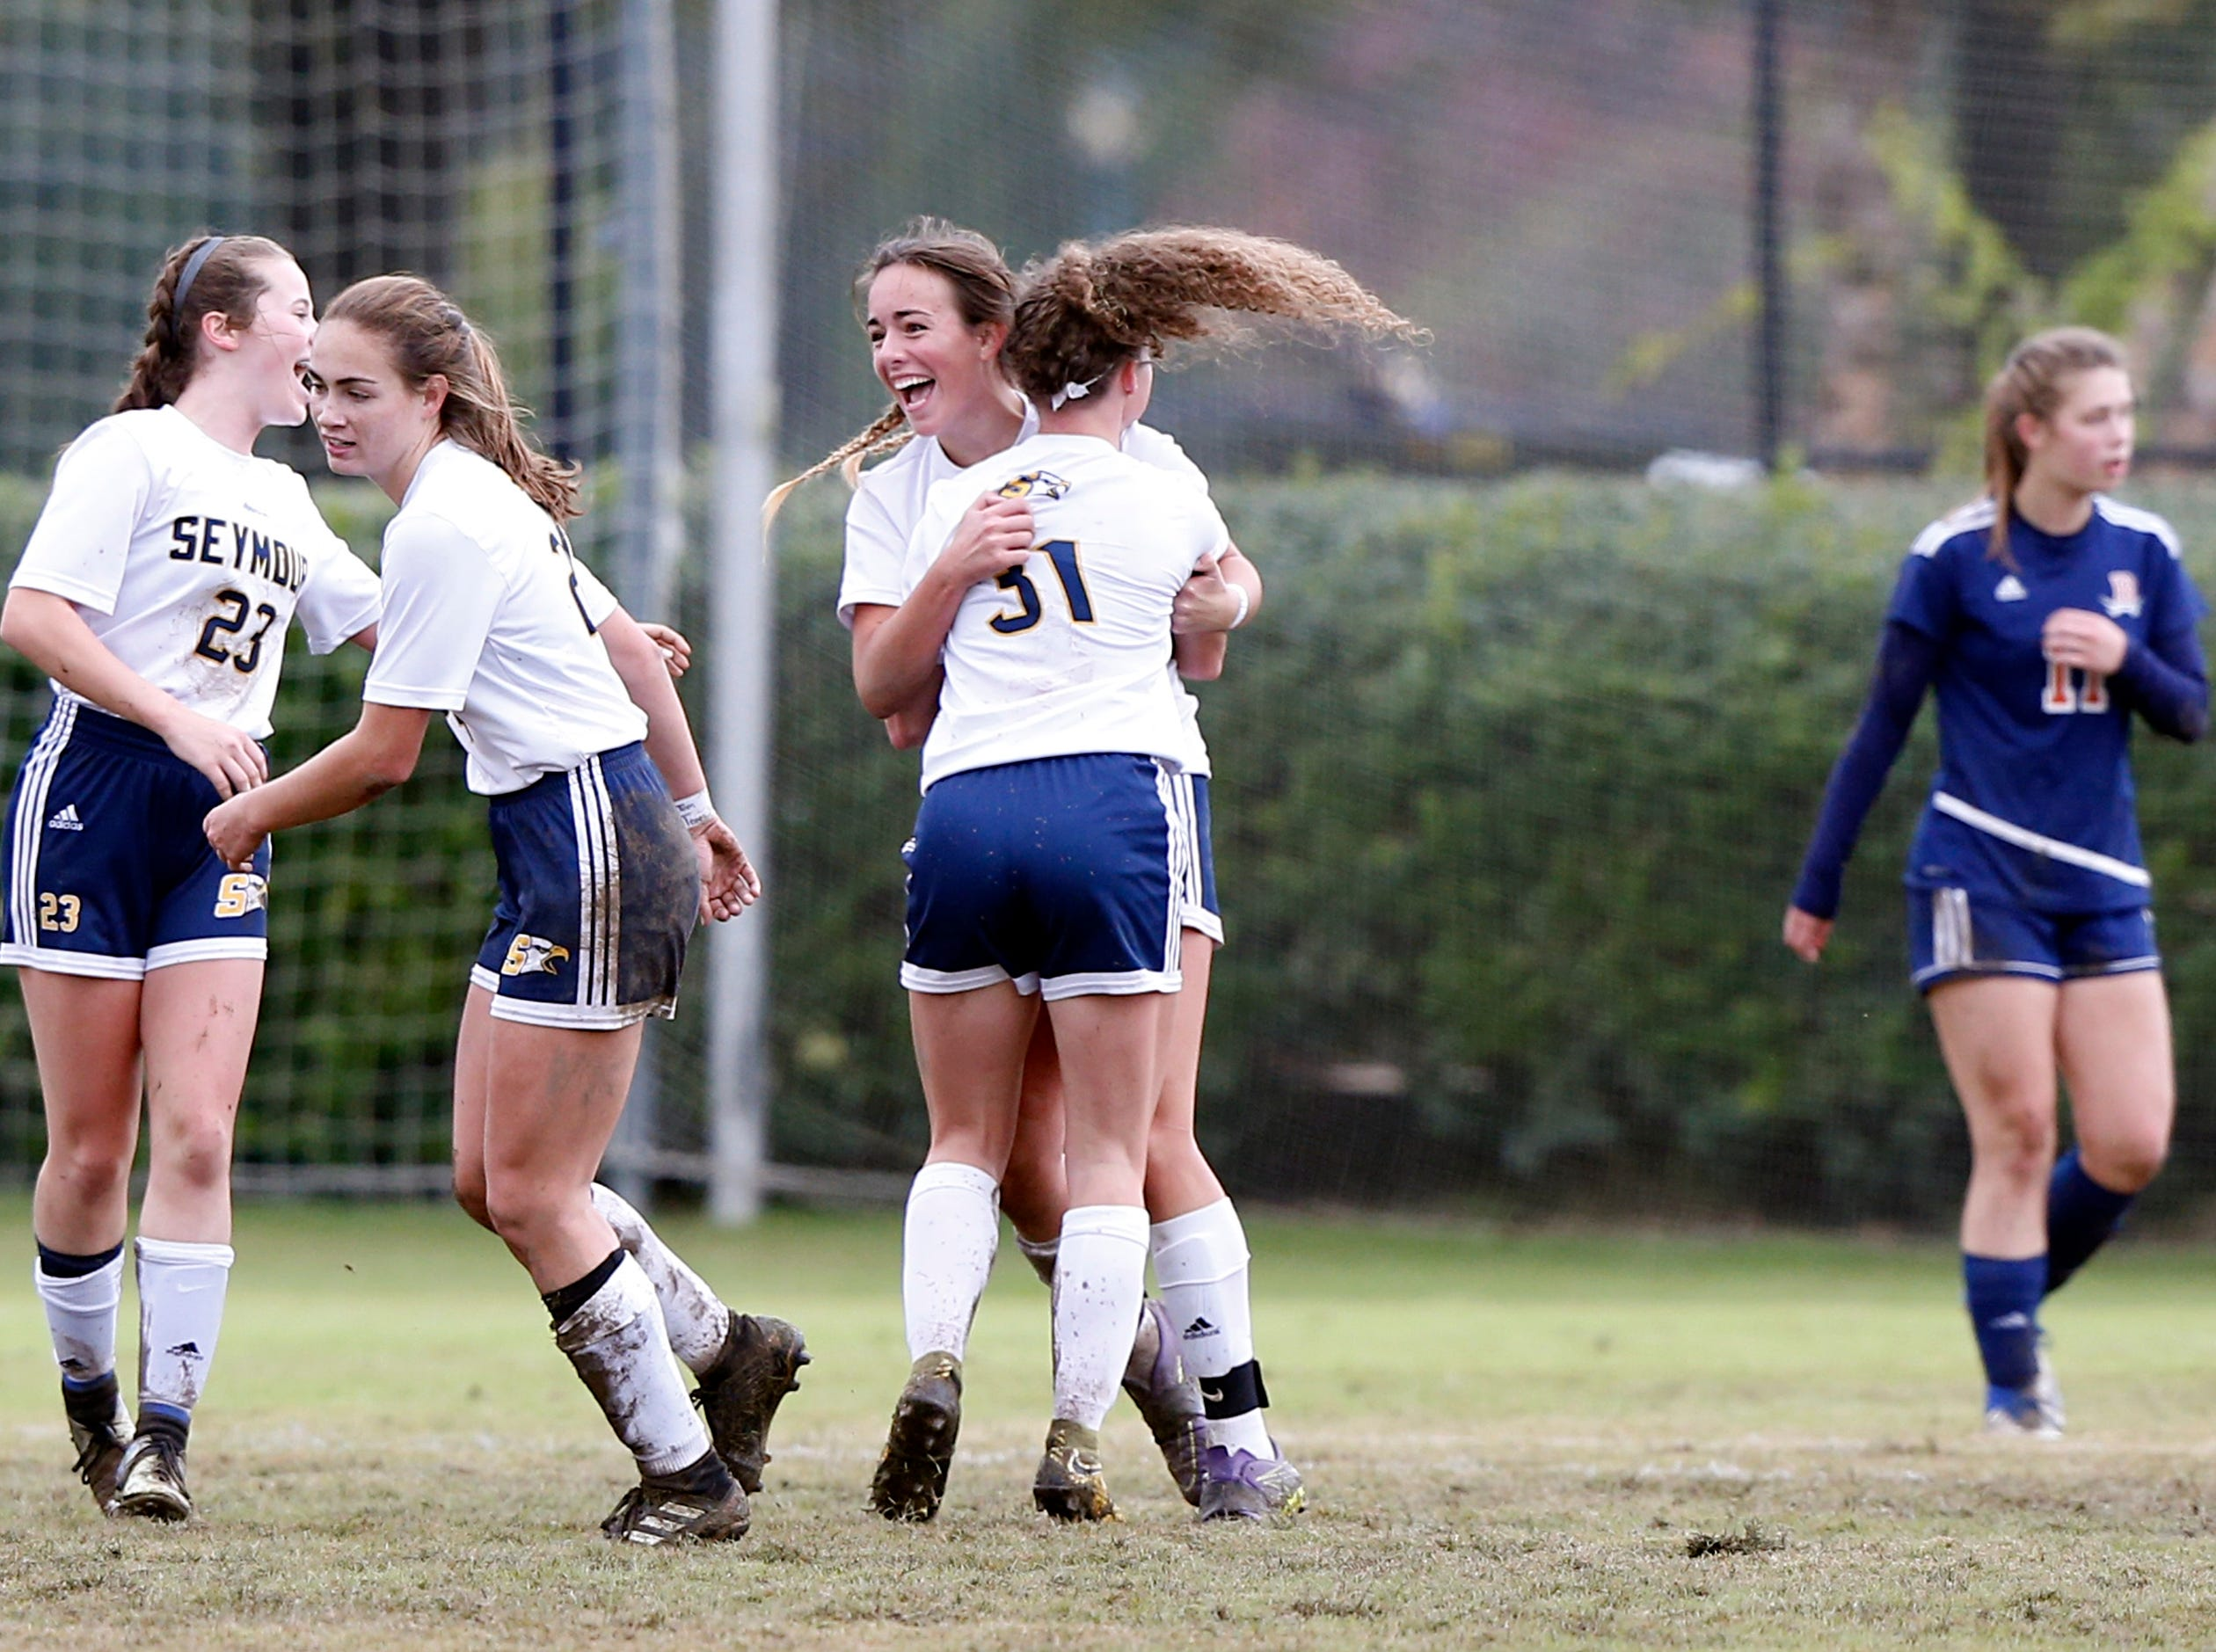 Seymour's Tyler Taff (facing) is congratulated by Anna Pendleton (31) after scoring a goal  against Beech during their Class AA soccer championship match Saturday, Oct. 27, 2018, in Murfreesboro, Tenn.